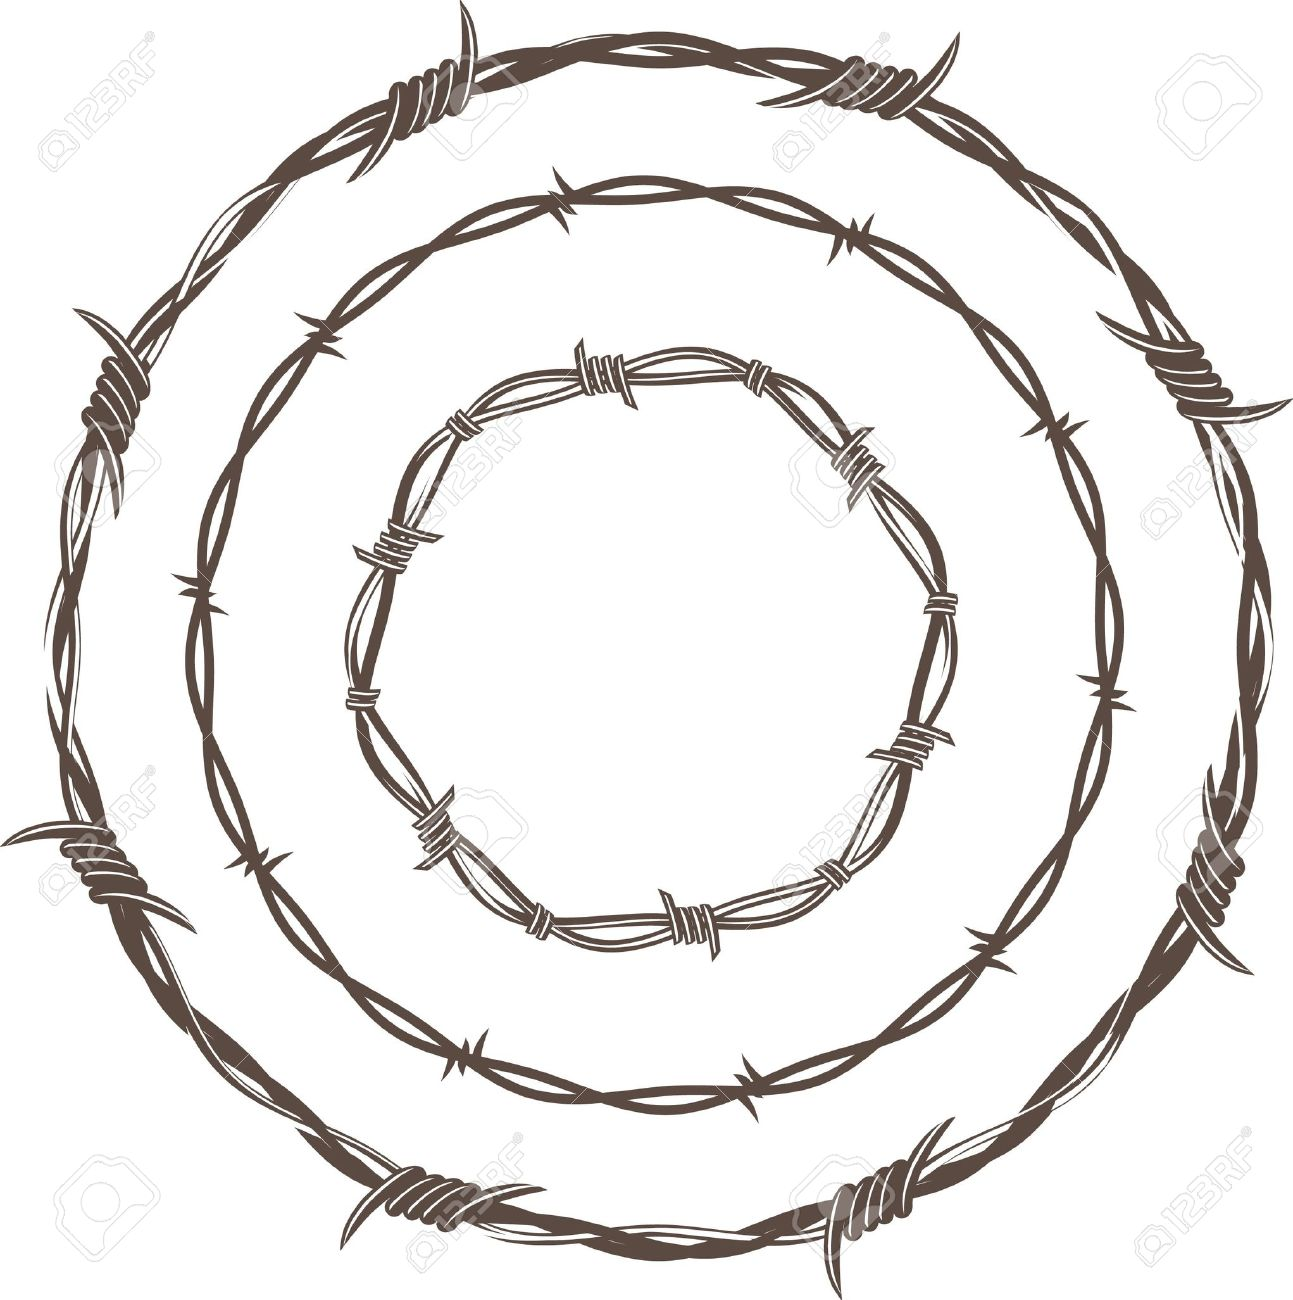 Barbed wire vector brush - Art Barbed Wire Barbed Wire Rings